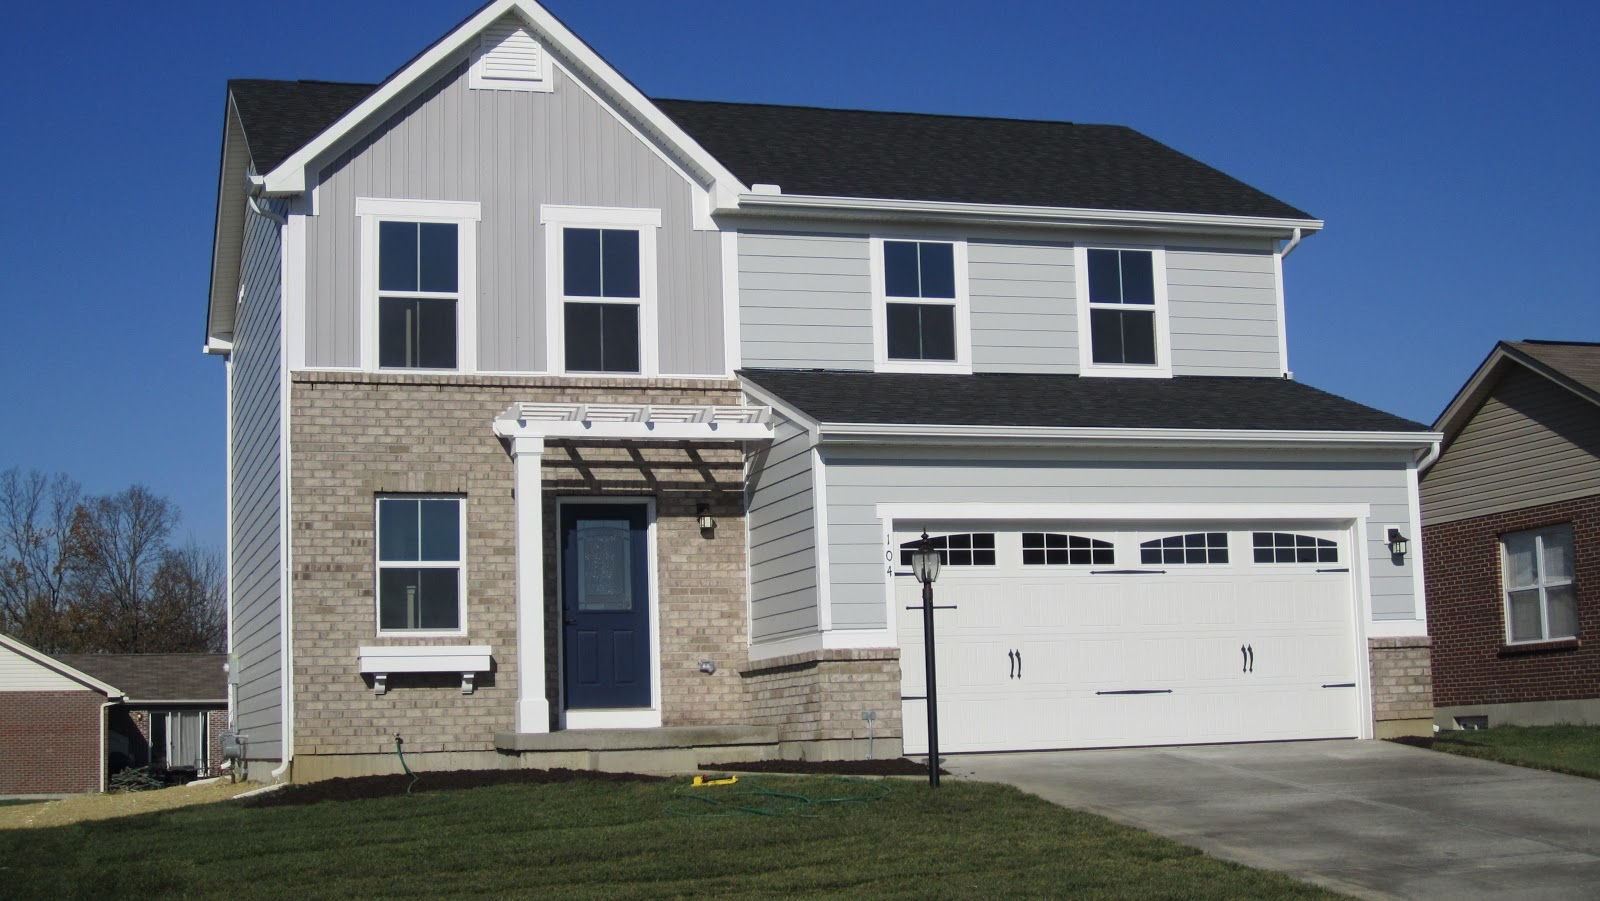 Building Our Home Pictures Of Finished Sienna Elevation L